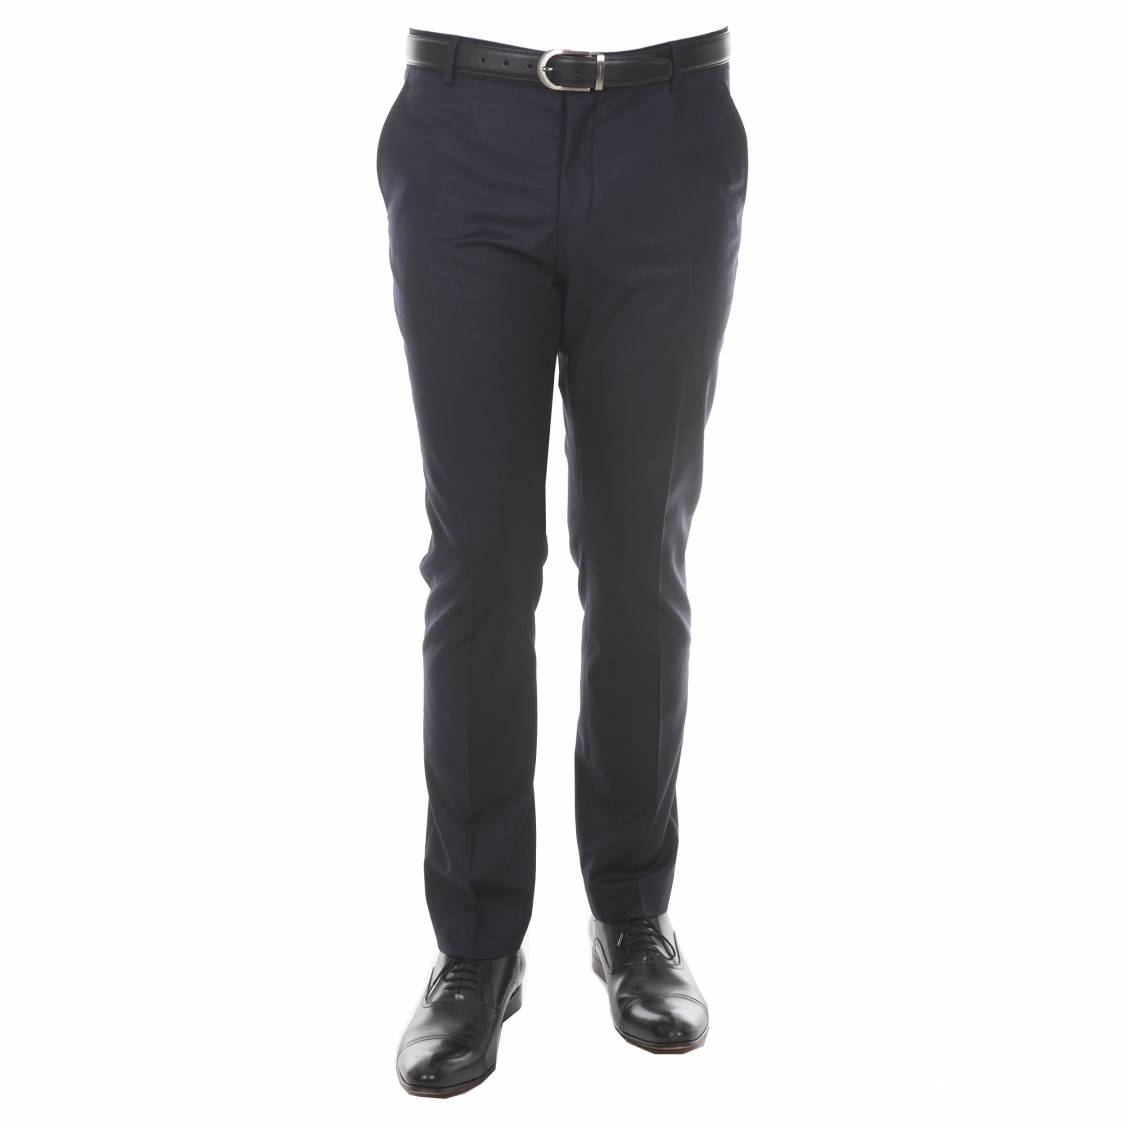 pantalon de costume Selected bleu marine